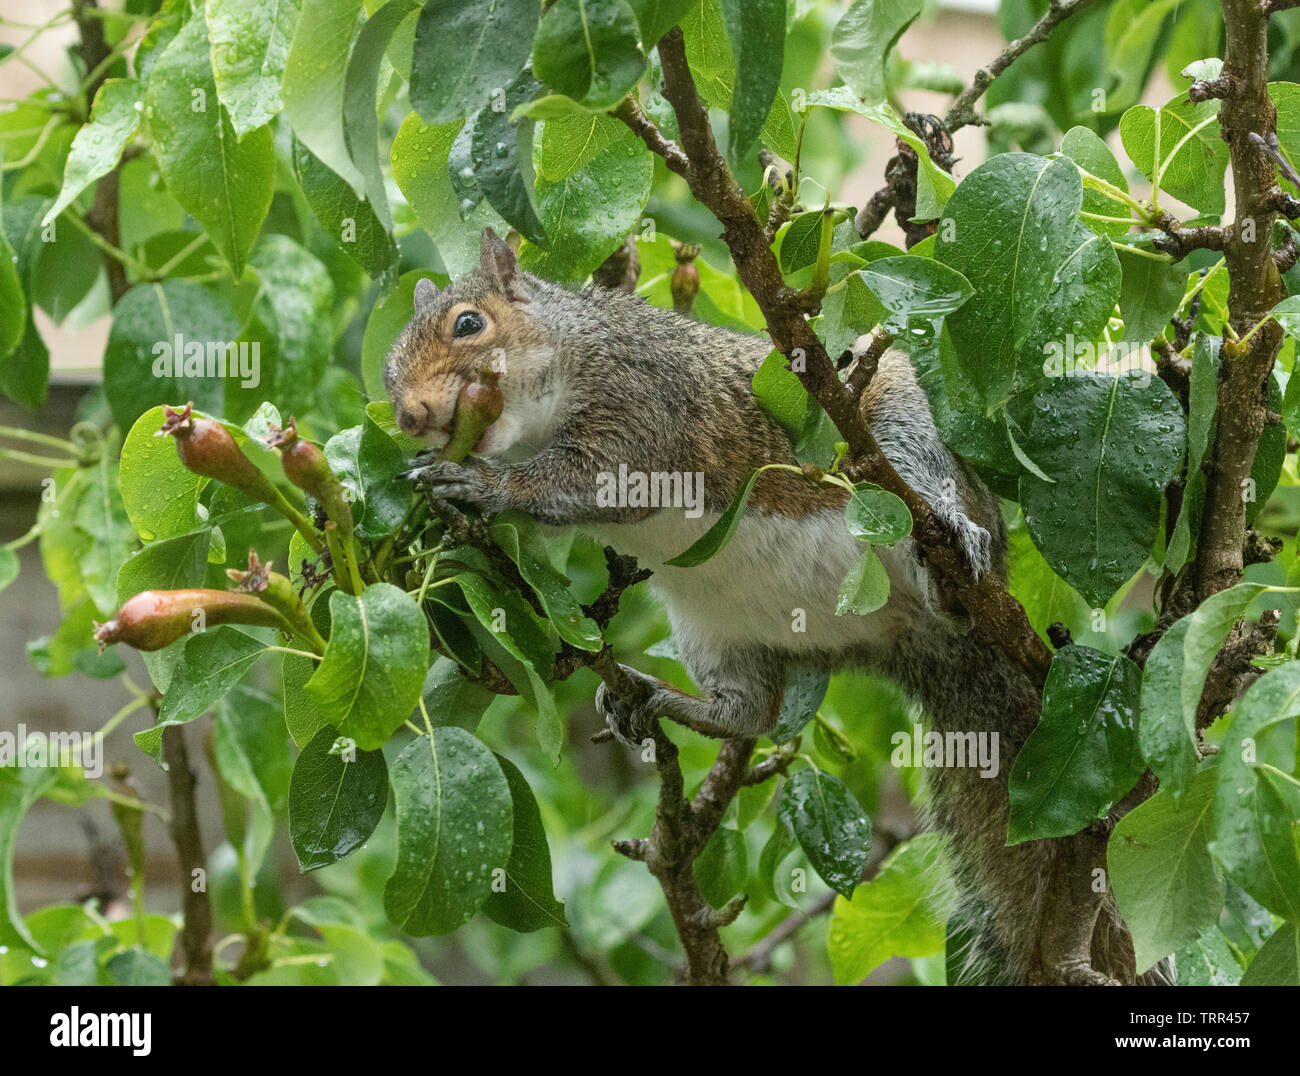 A grey squirrel taking and eating very small, unripe pears. - Stock Image